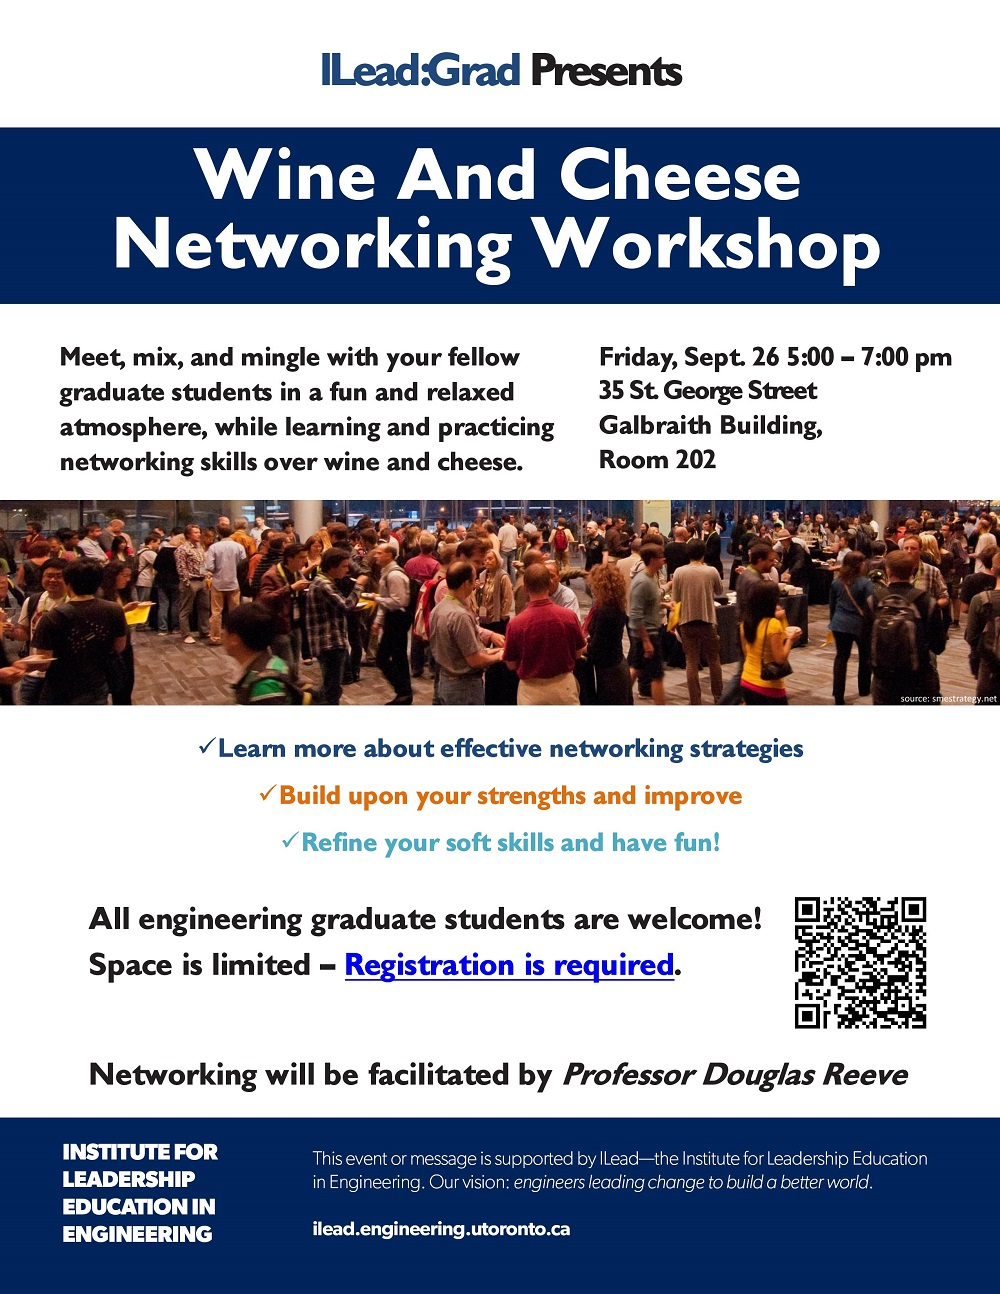 Wine and Cheese Networking Workshop